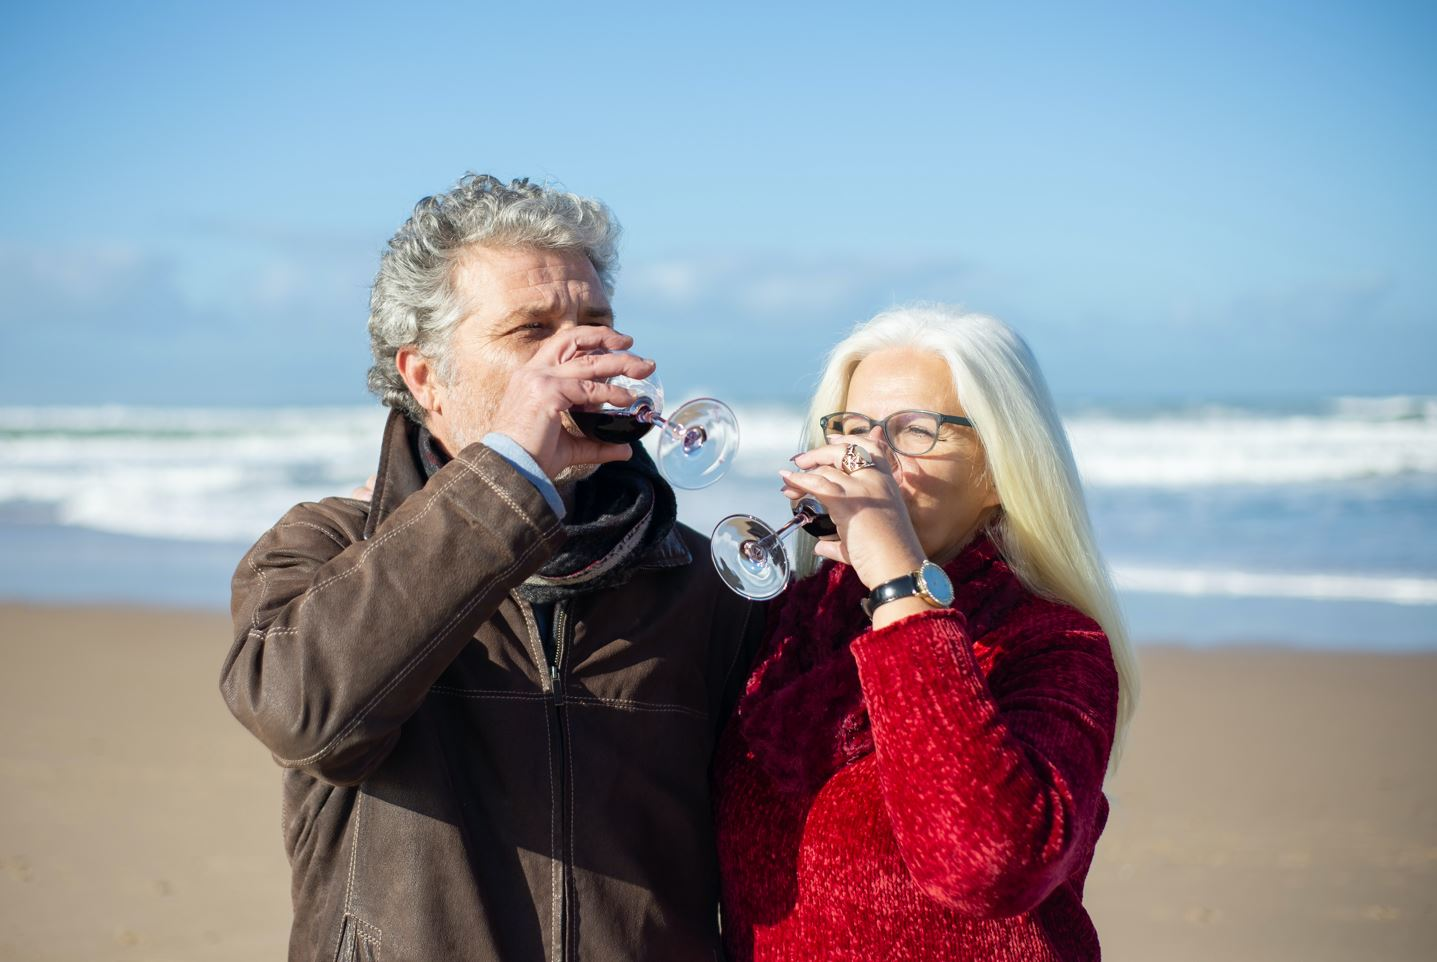 Research indicates that low to moderate alcohol consumption may help reduce risk of cataract surgery